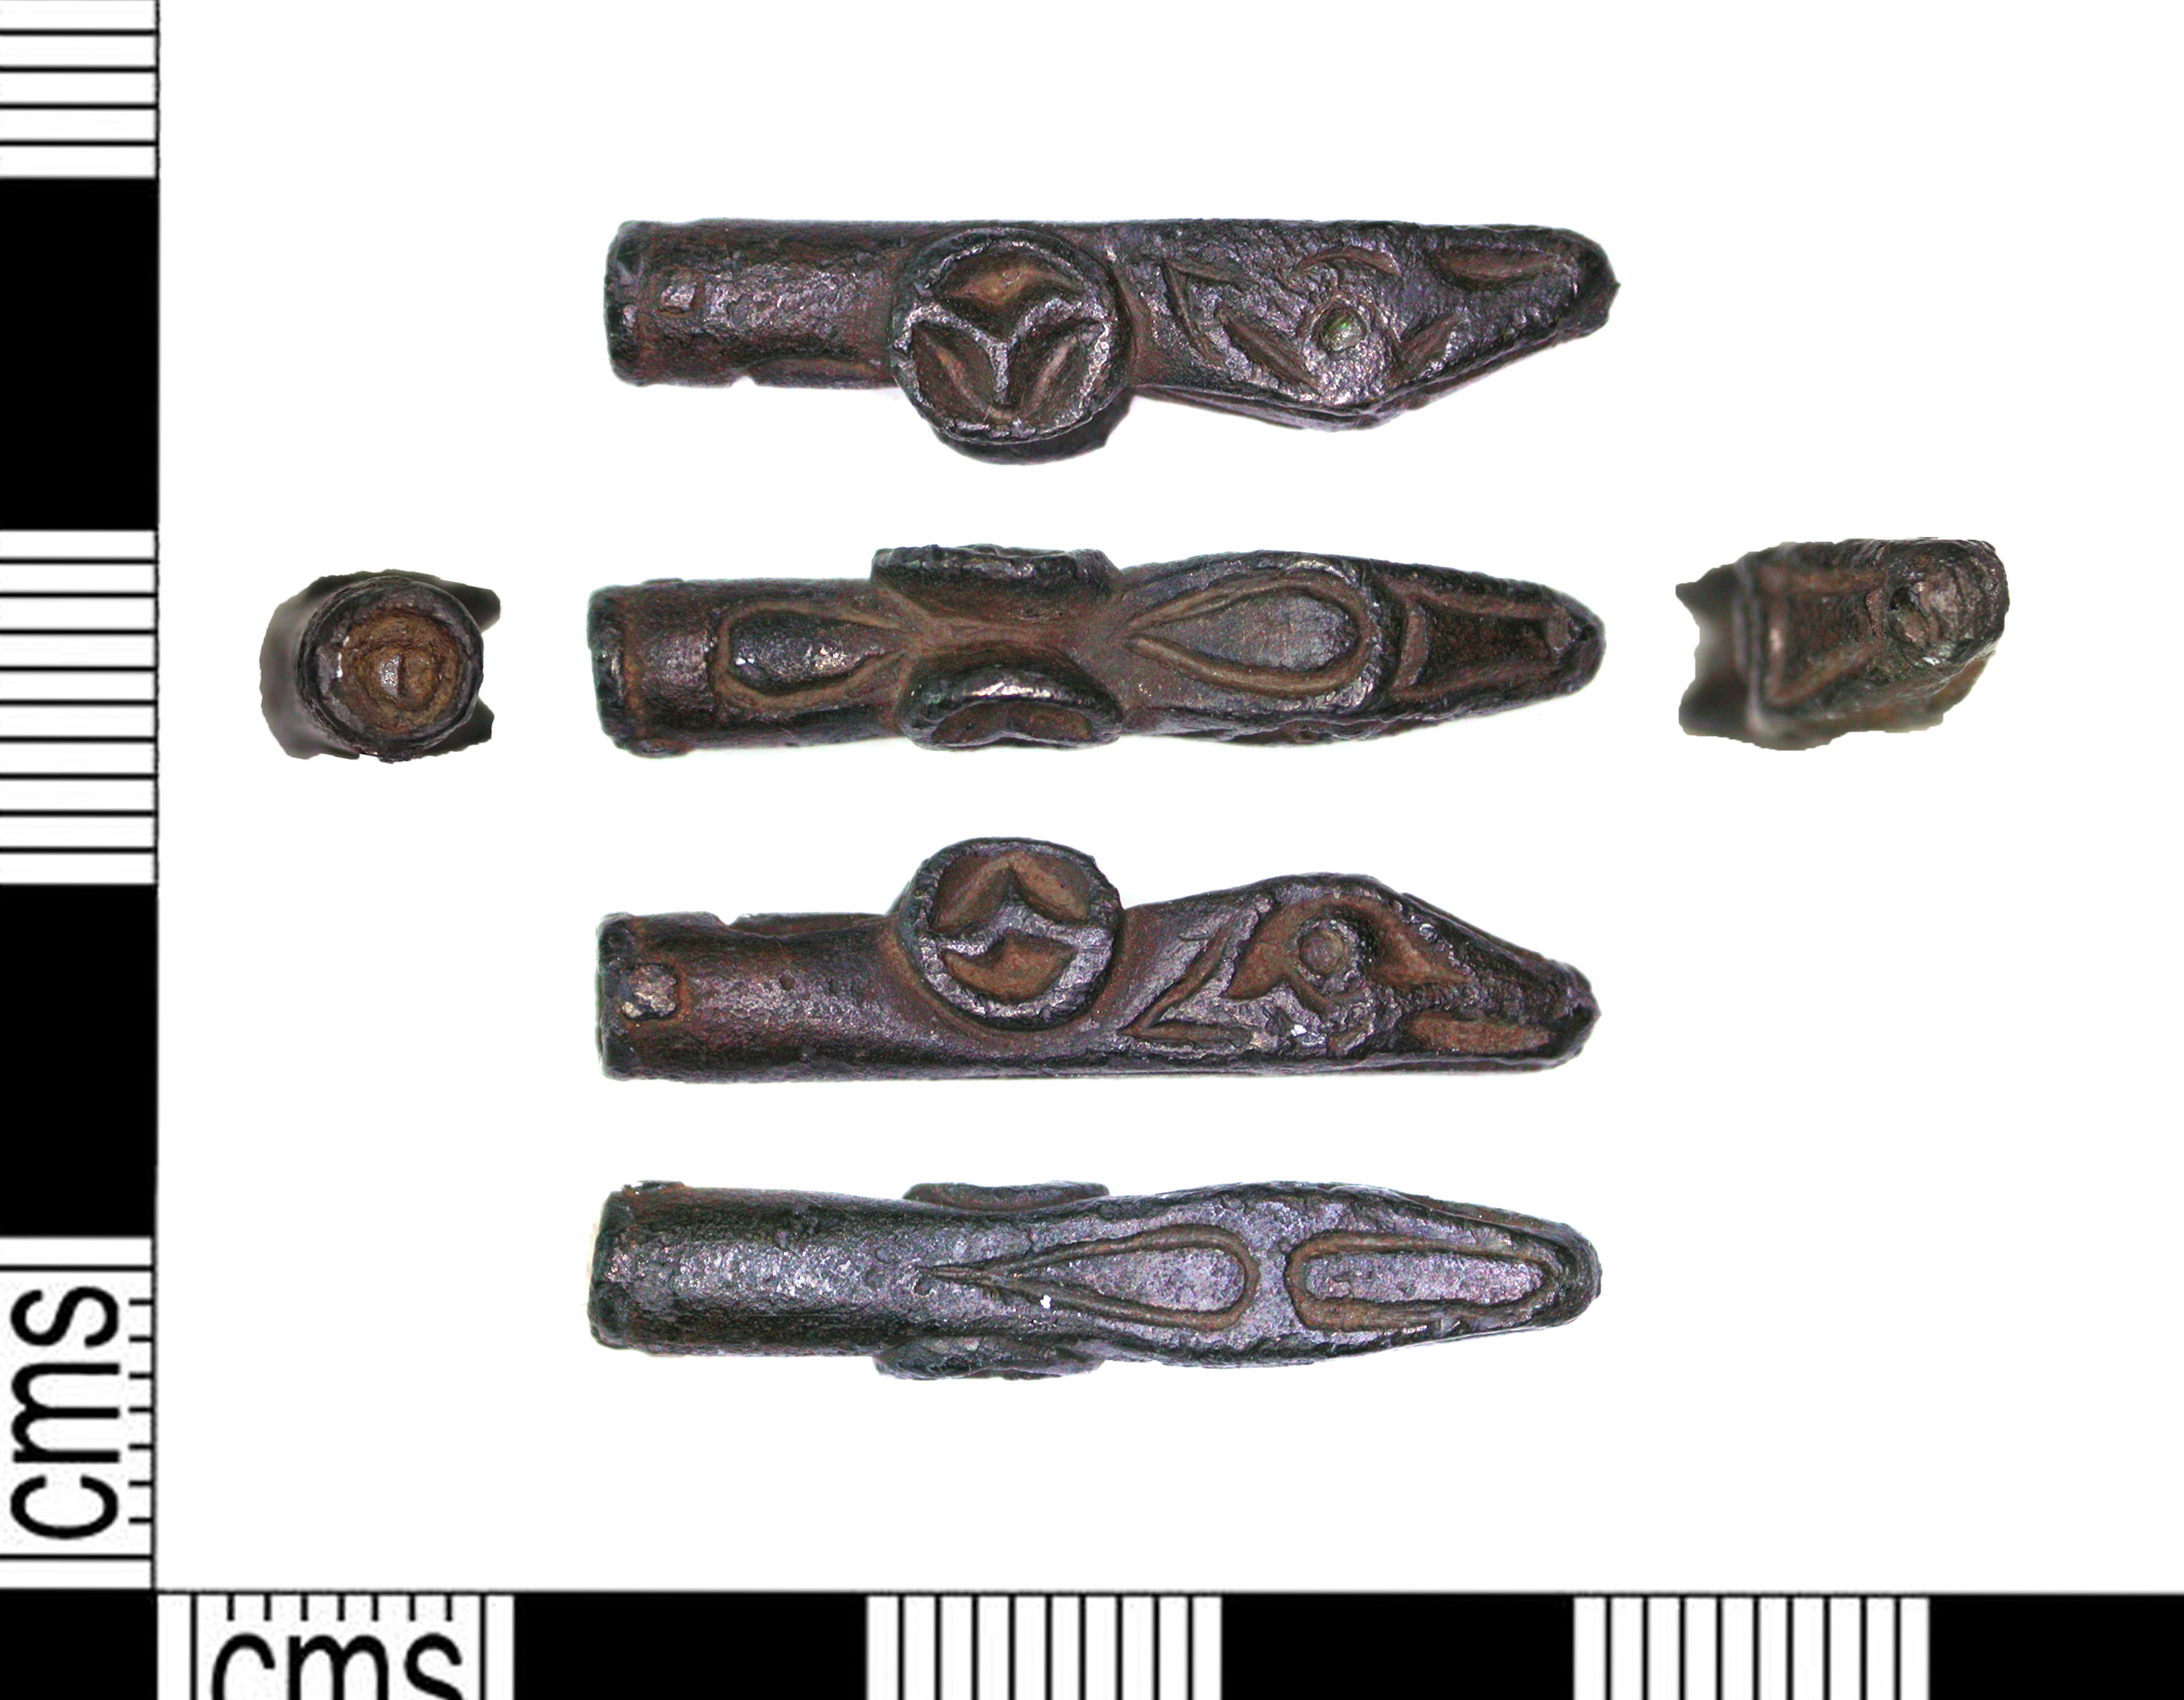 An early medieval zoomorphic mount made out of silver